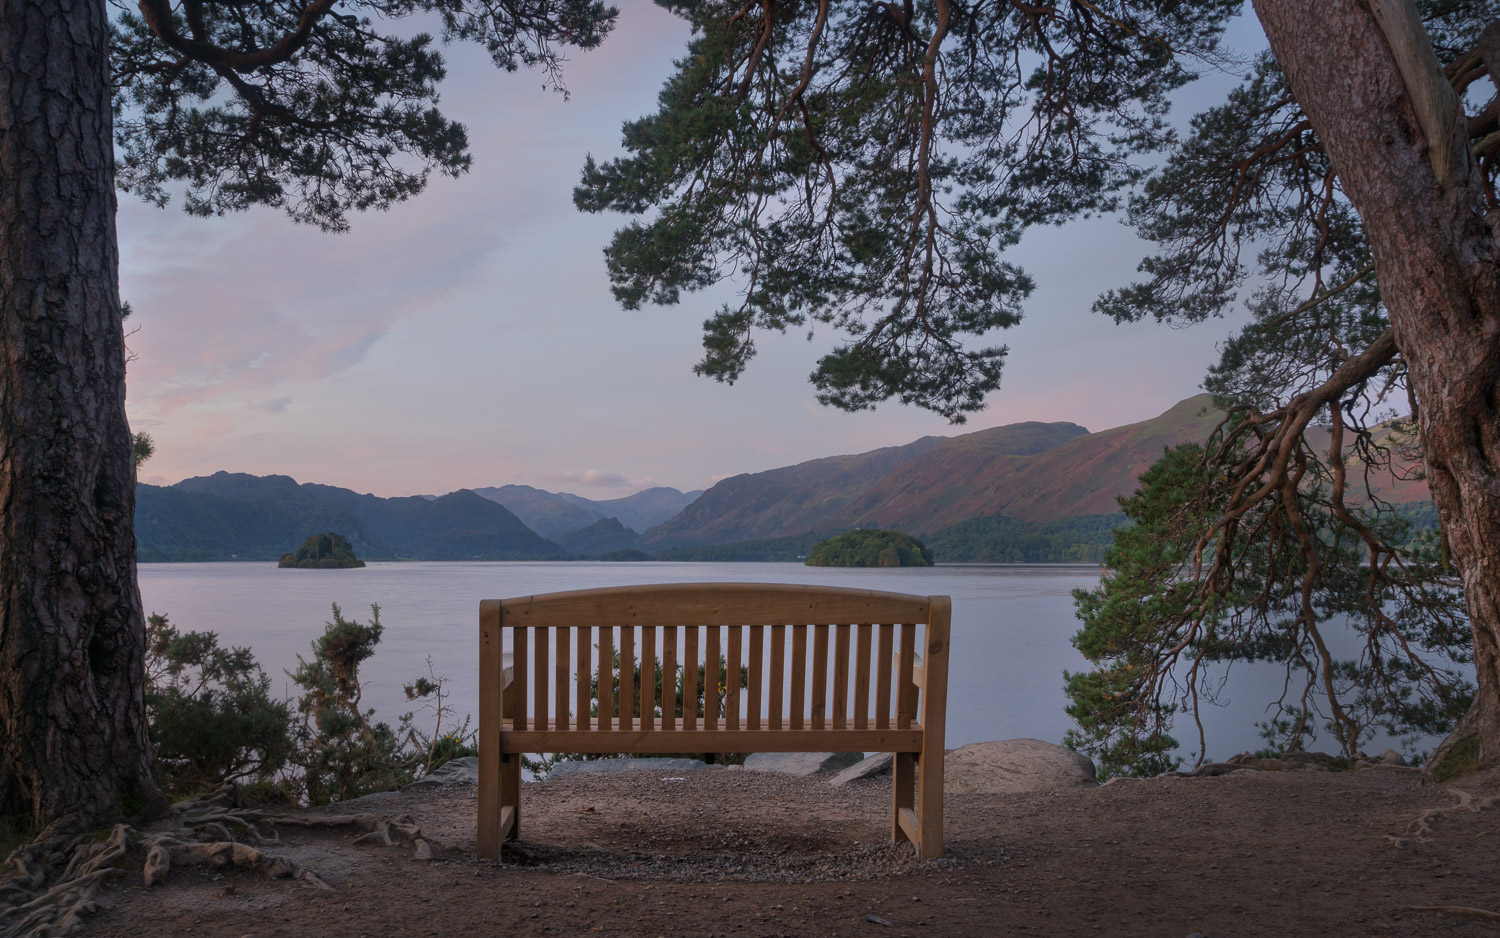 Why You Should Avoid Shooting at Small Apertures Like F18 to F40 - park bench and scenic view